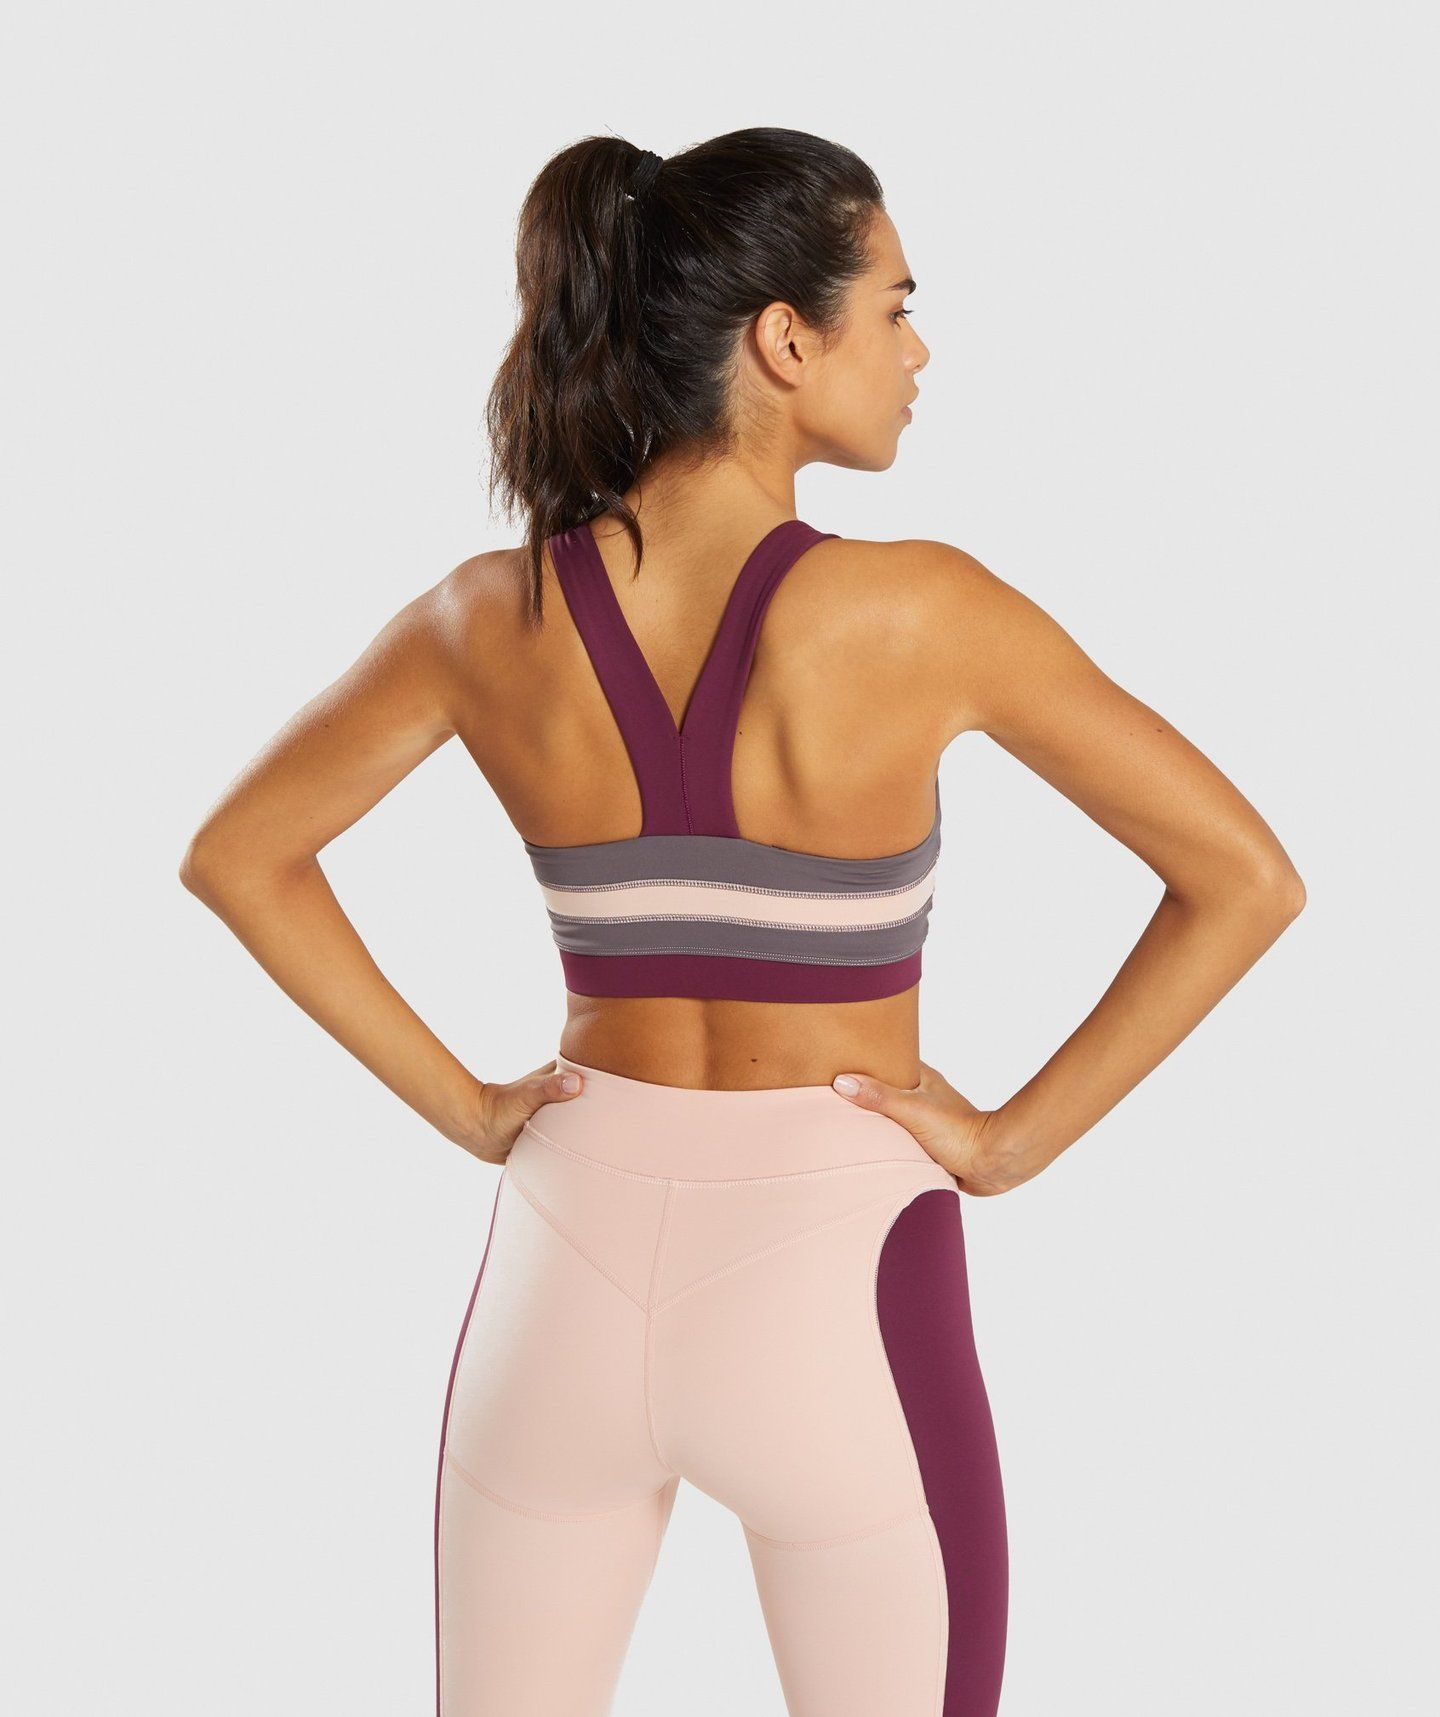 6aa57909de3b0 Gymshark Illusion Sports Bra - Dark Ruby Blush Nude Slate Lavender 1